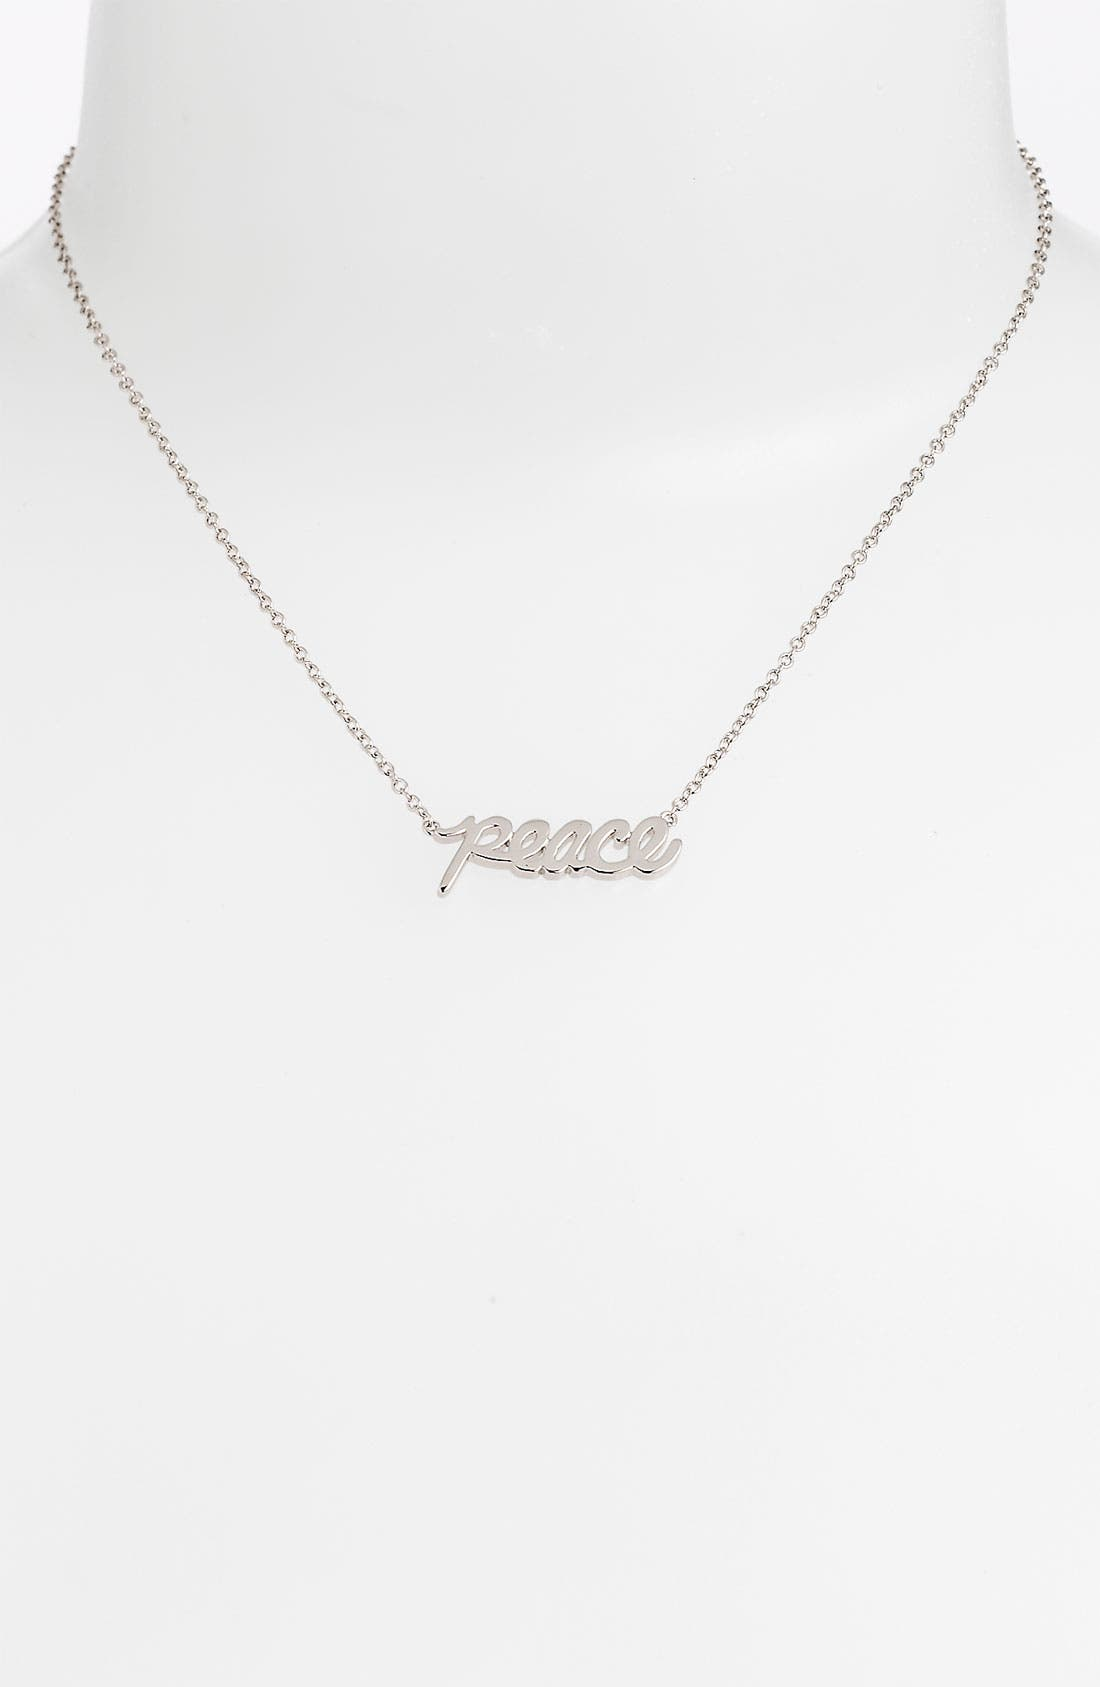 Alternate Image 1 Selected - Ariella Collection 'Messages - Peace' Script Pendant Necklace (Nordstrom Exclusive)